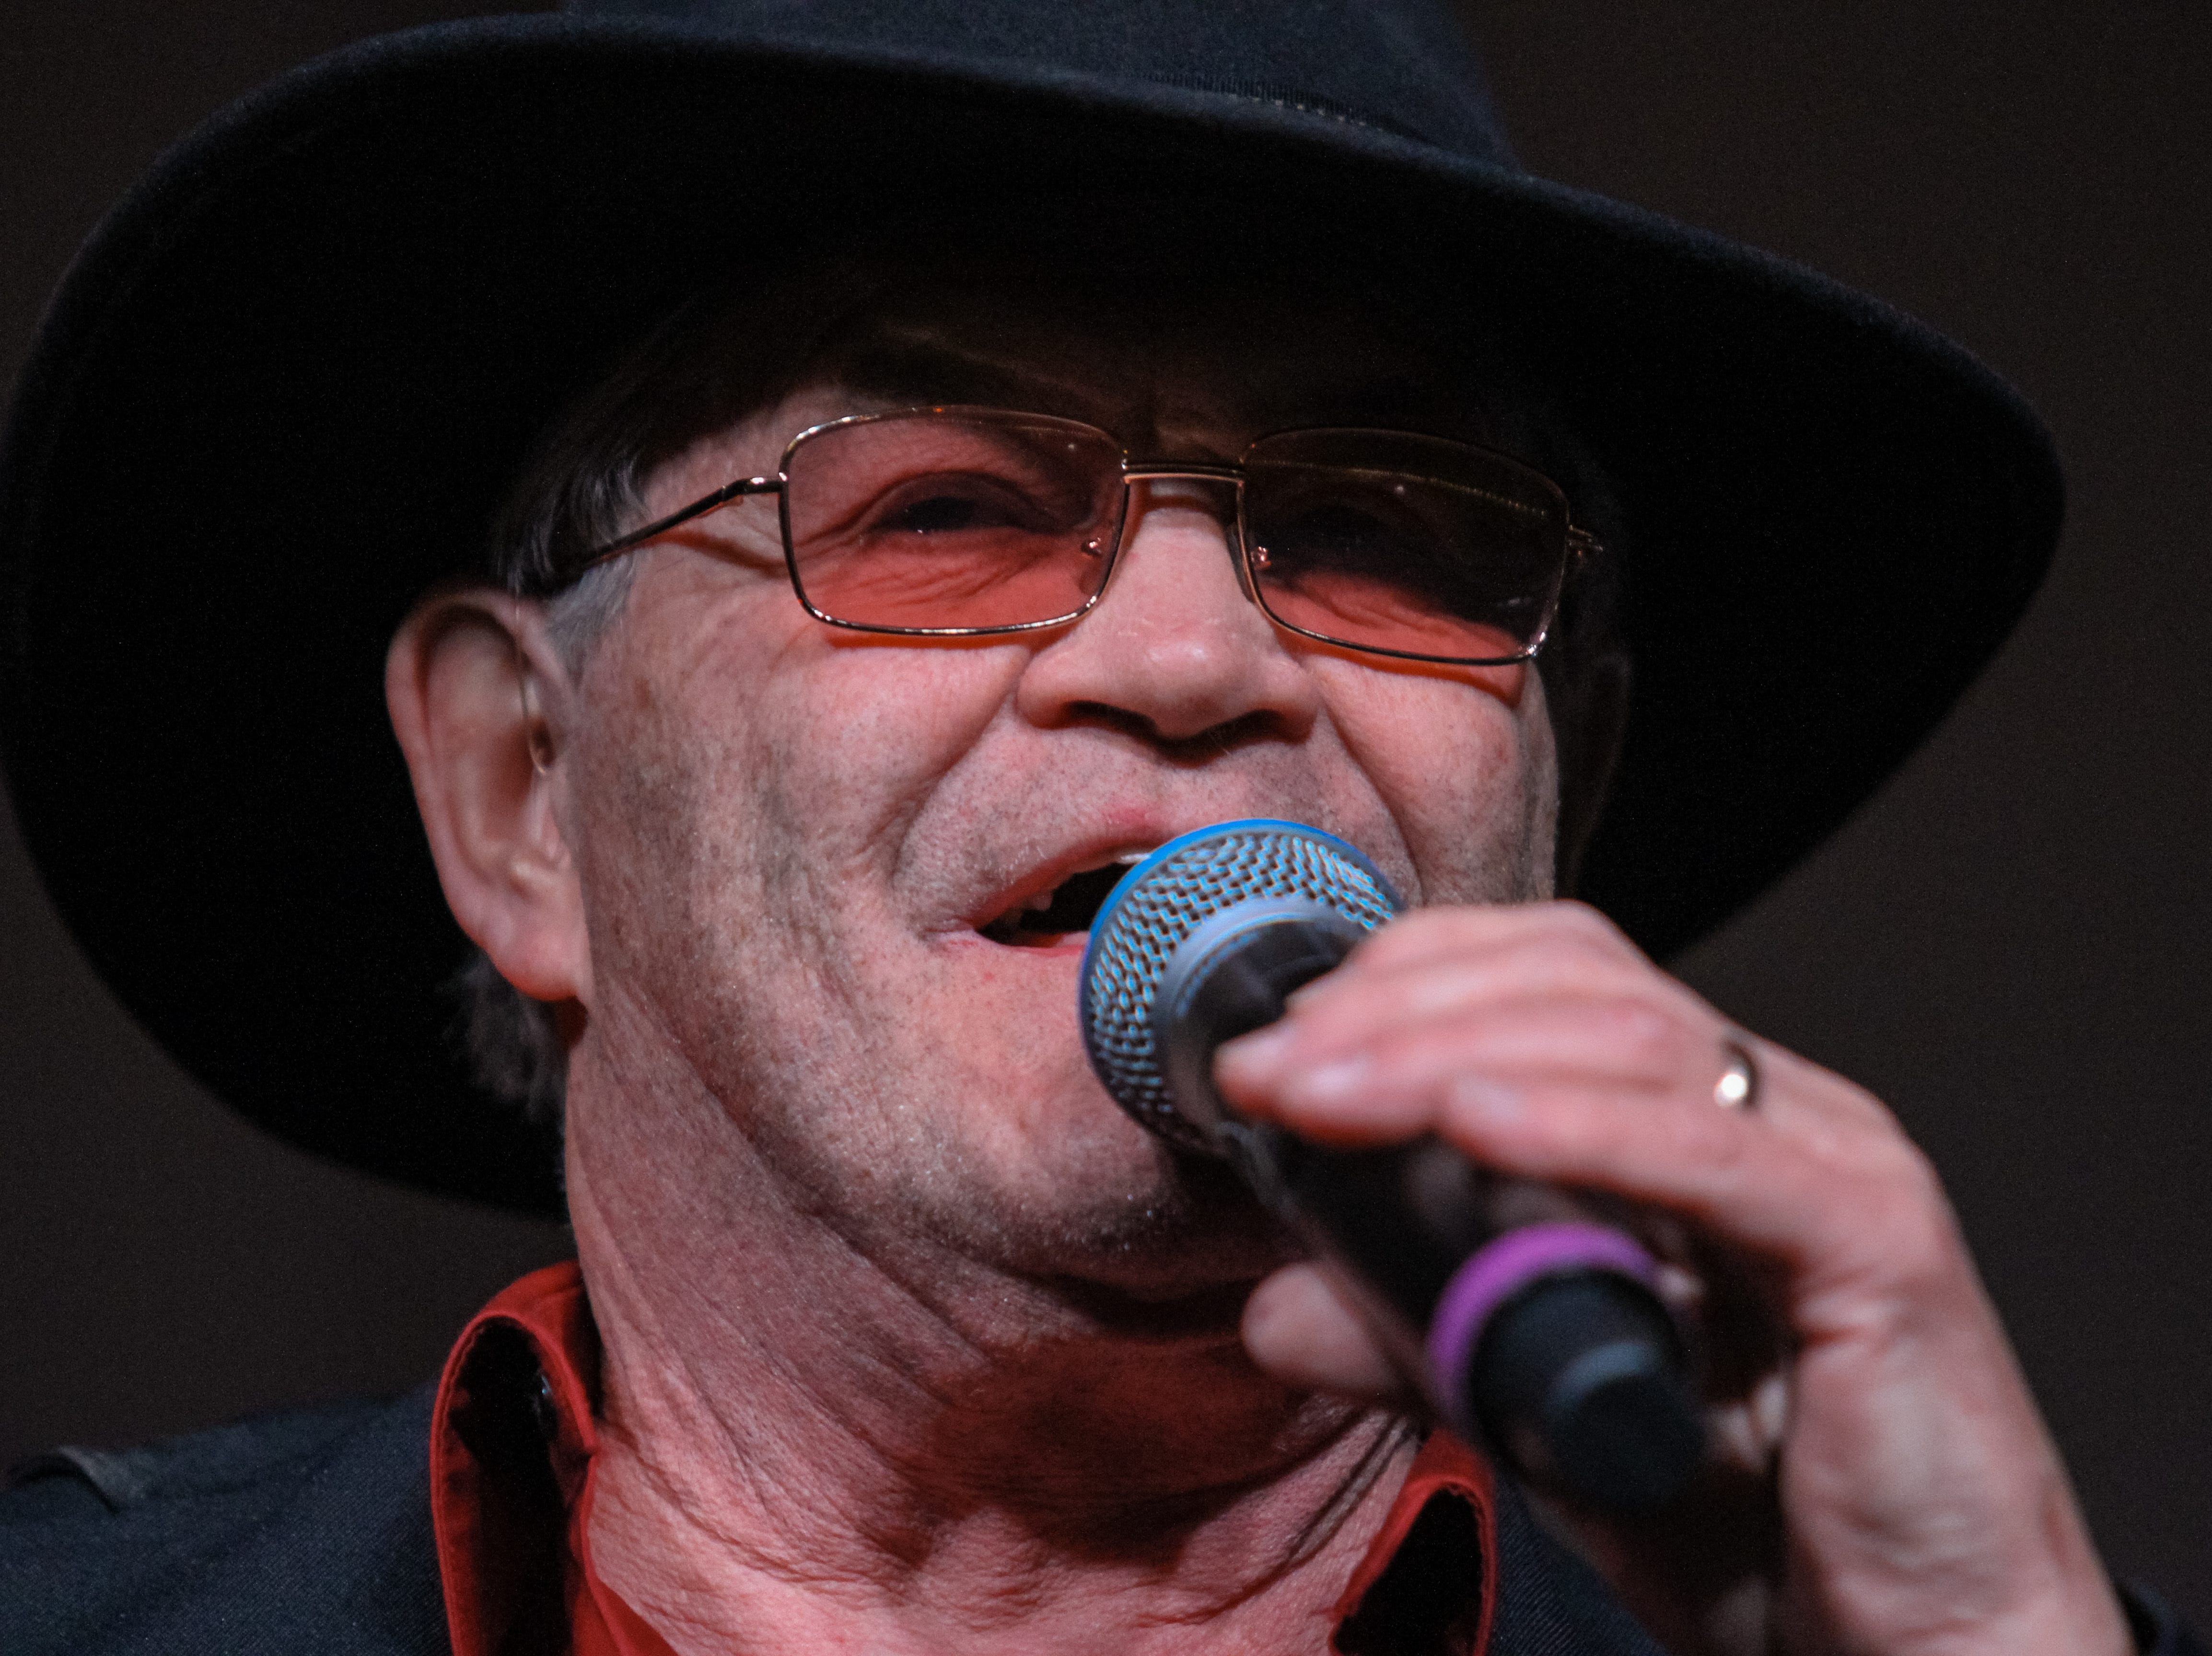 Micky Dolenz of The Monkees performs at Alice Cooper's Rock & Roll Fundraising Bash at the Las Sendas Golf Club in Mesa on April 27, 2019.